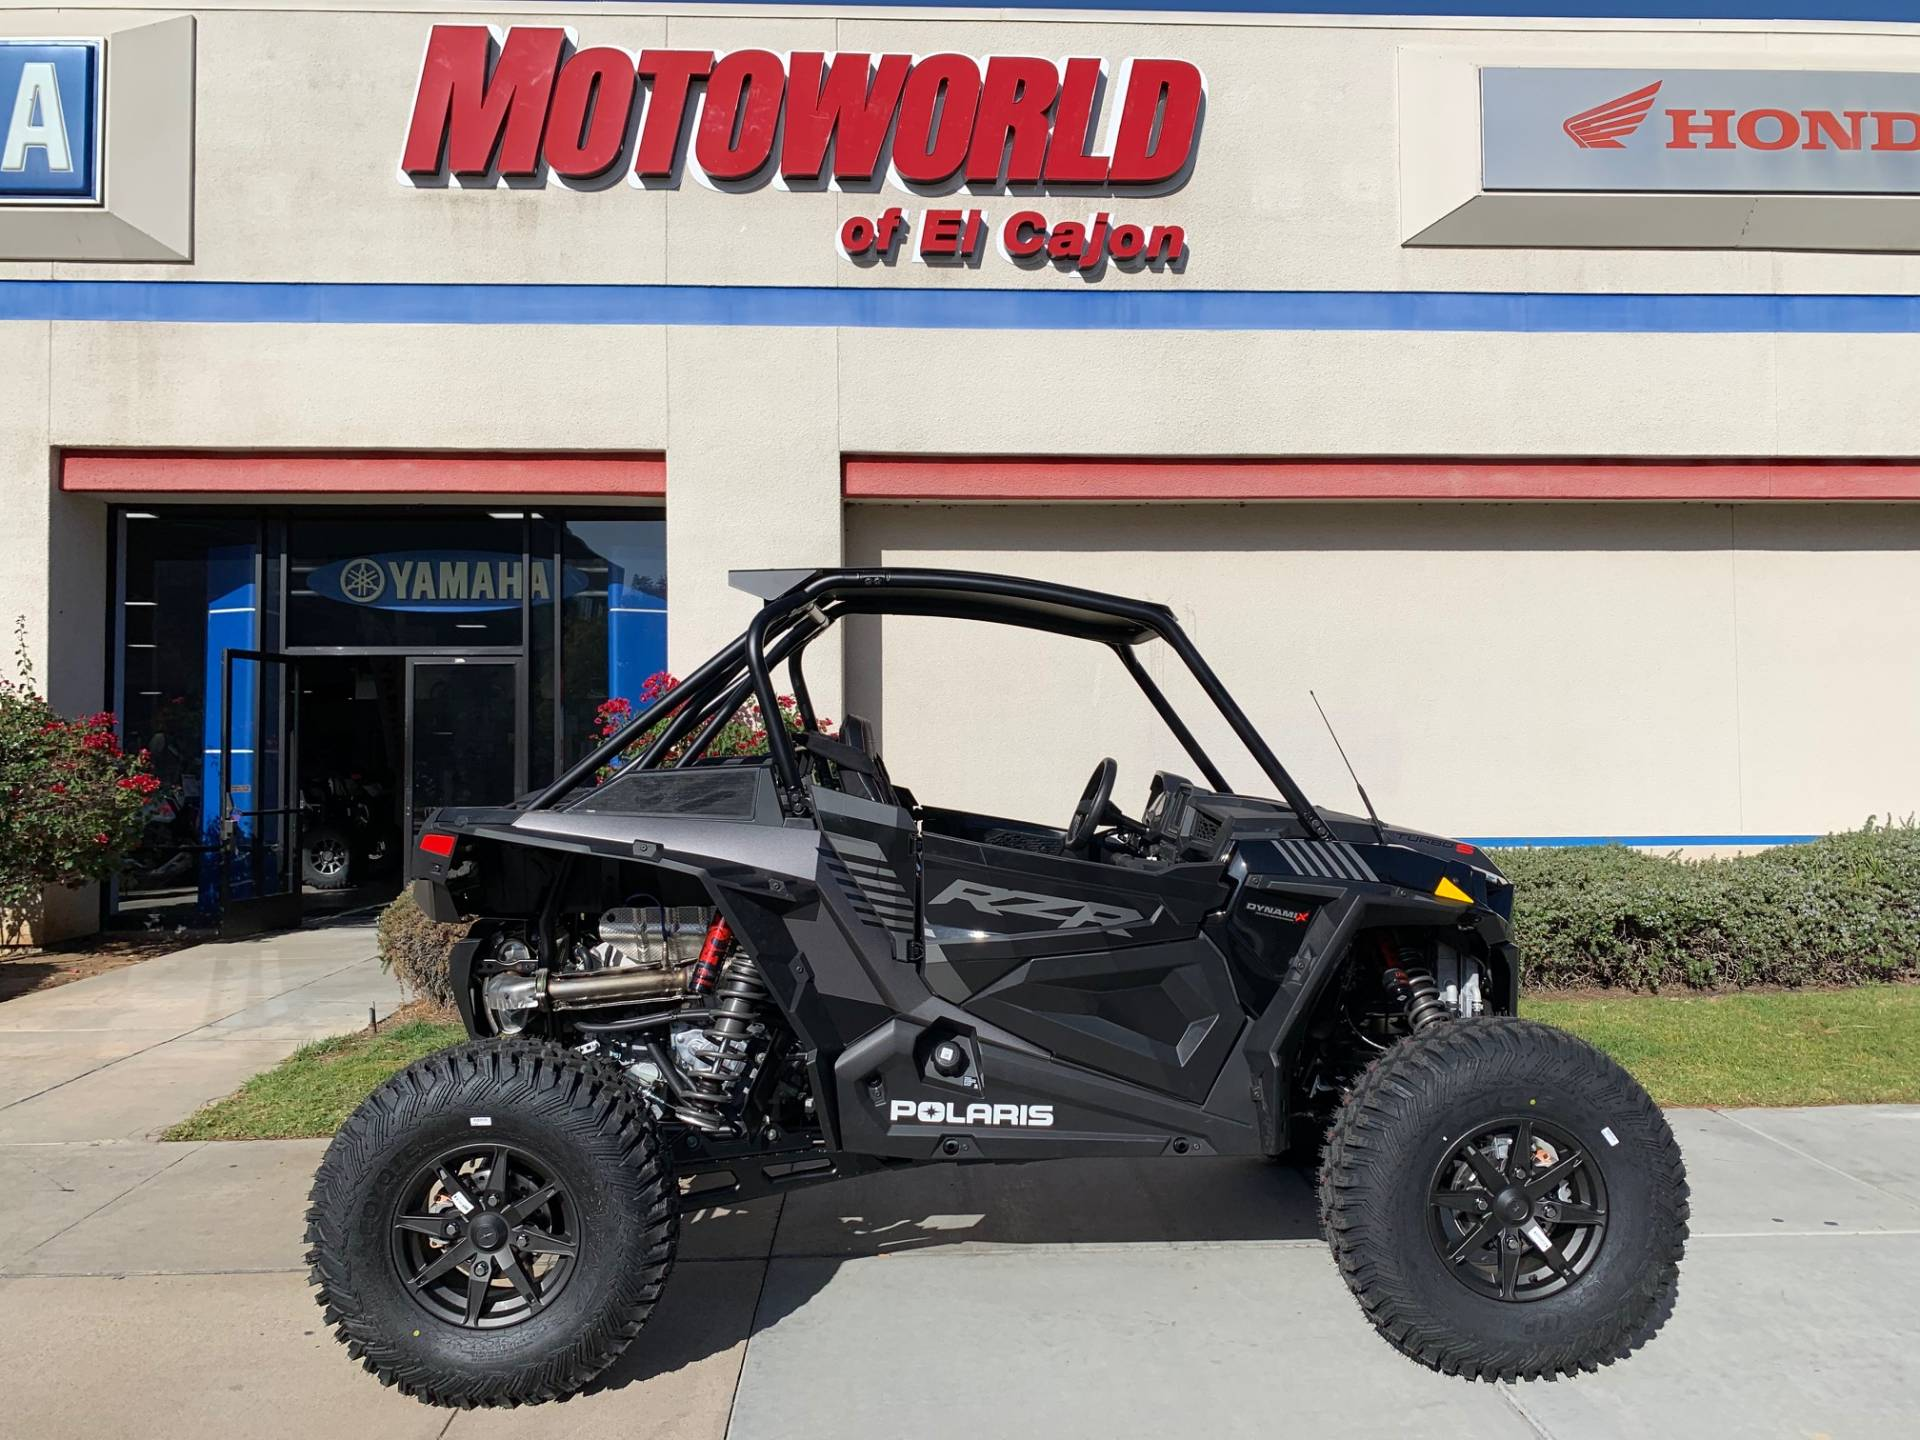 2021 Polaris RZR Turbo S in EL Cajon, California - Photo 1